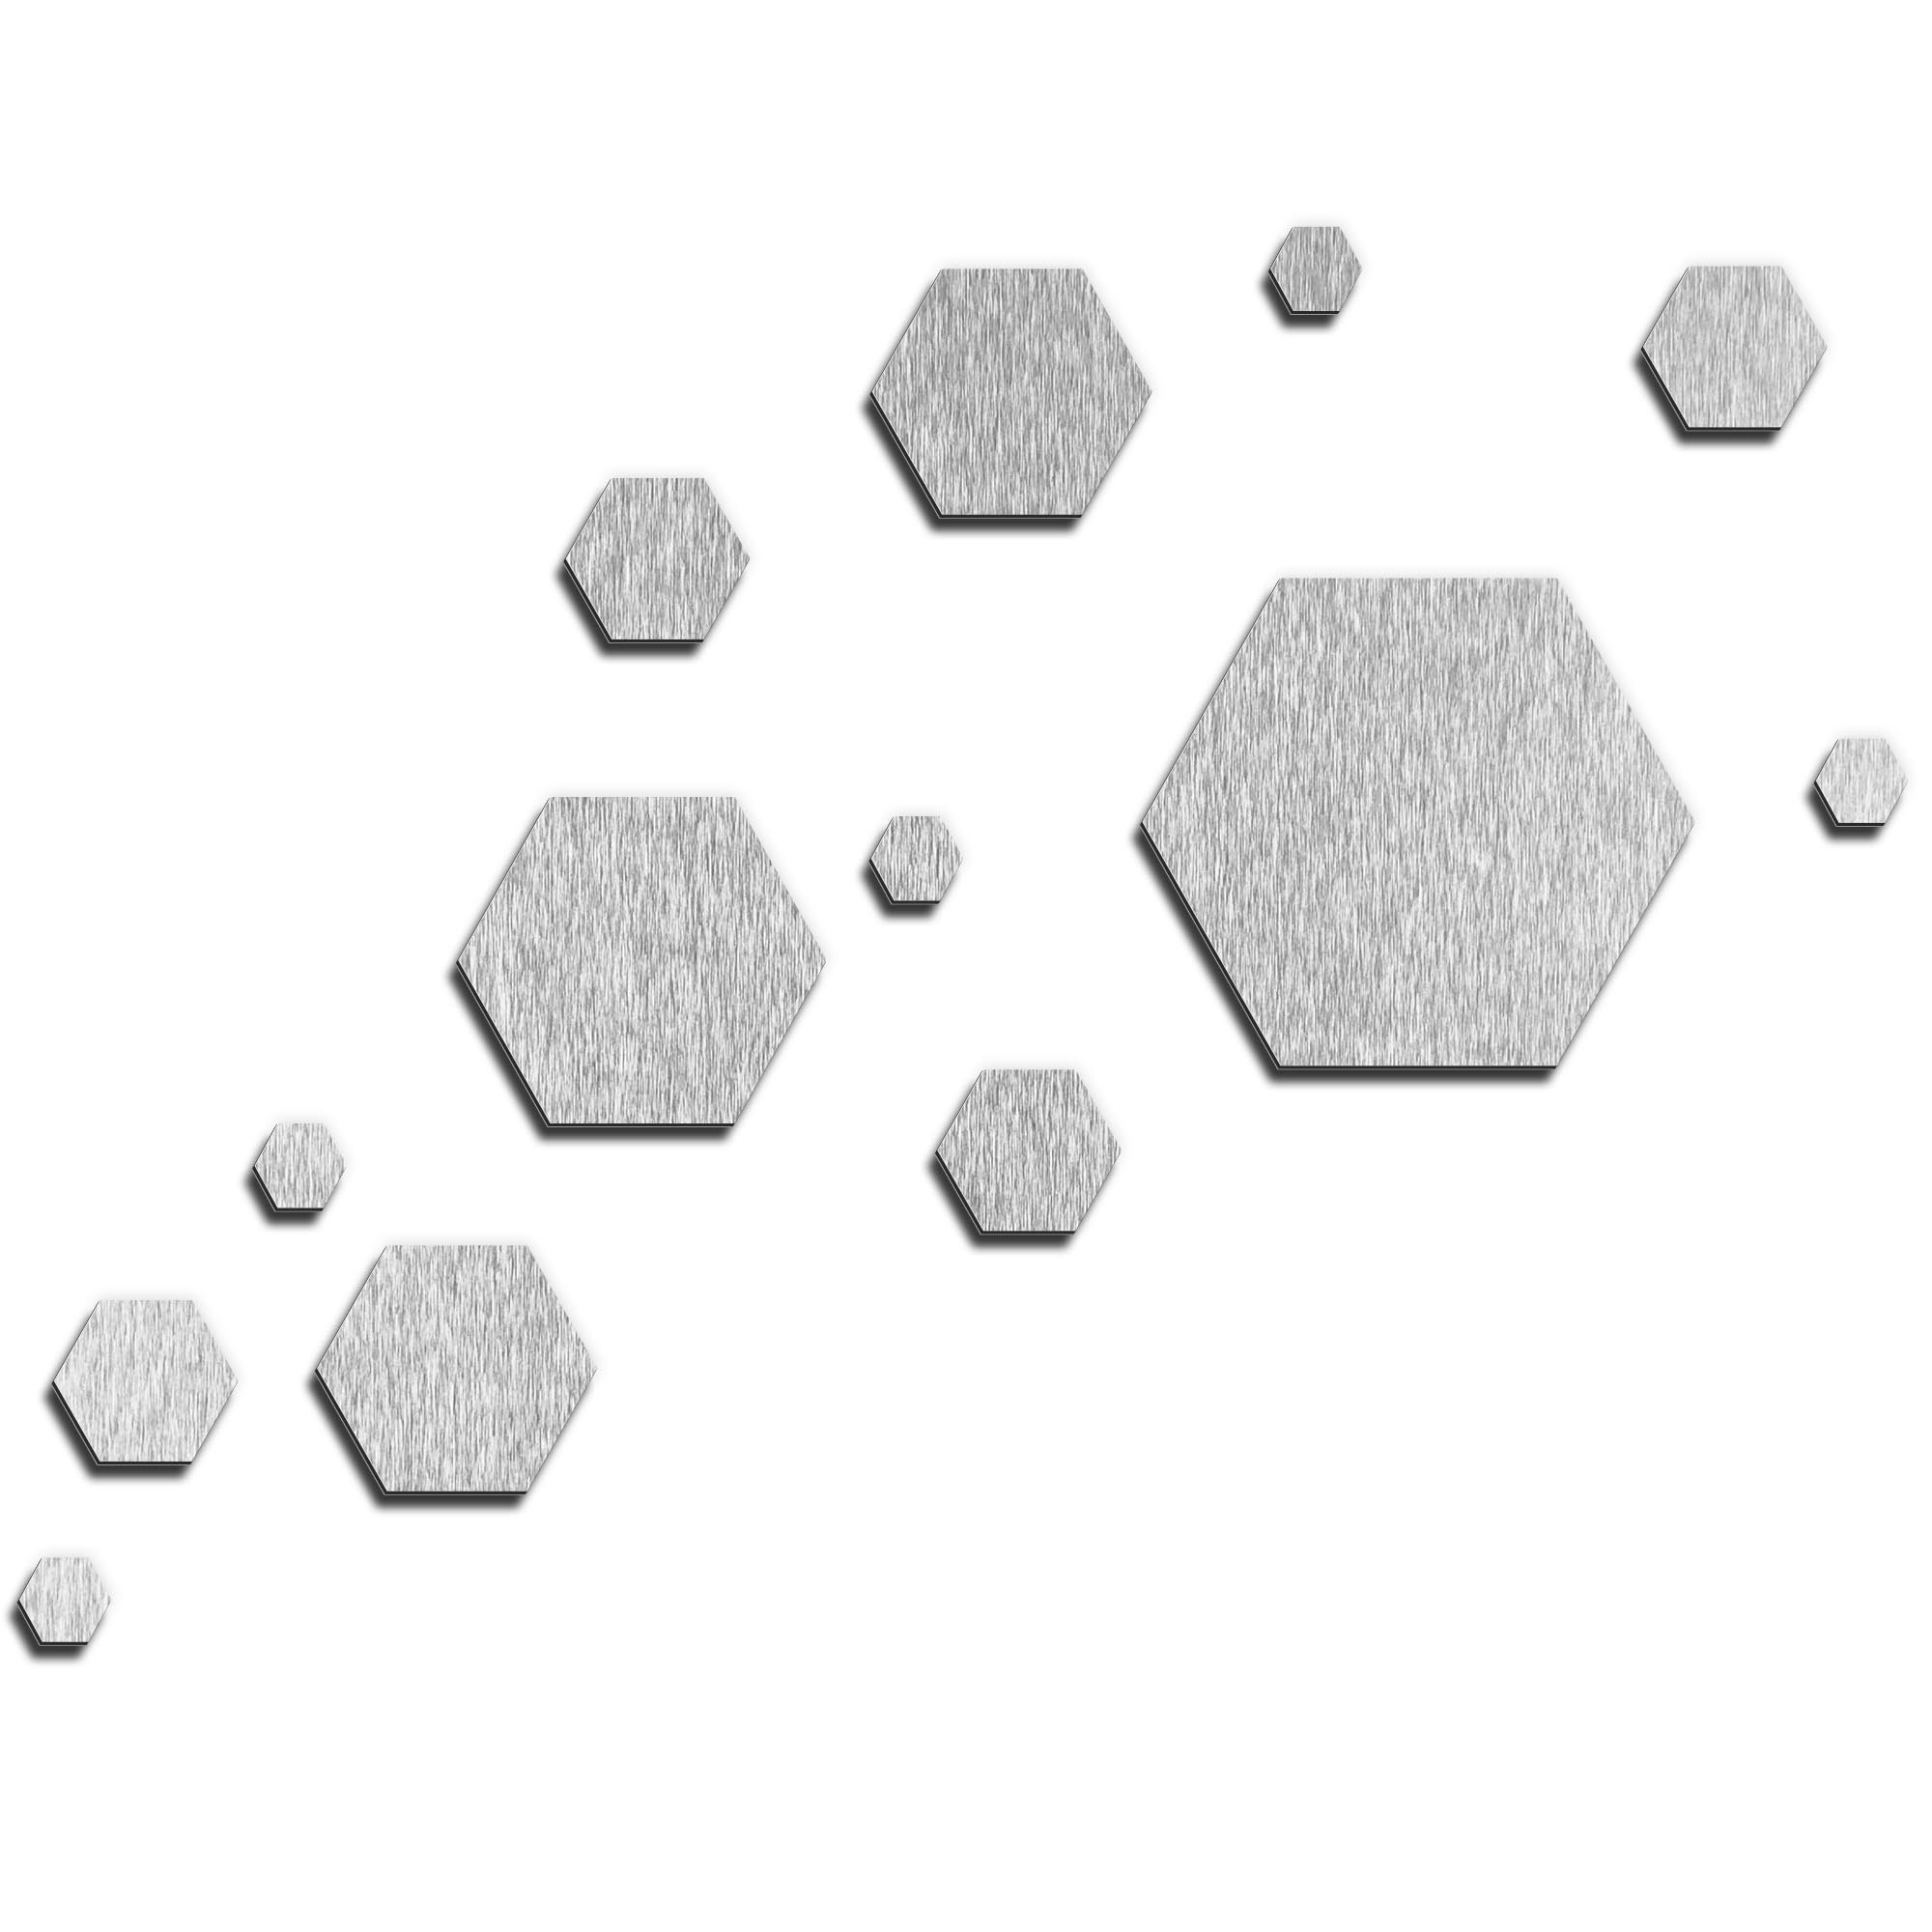 NAY 'Carbon Silver' 66in x 50in Hexagons Abstract Art on Aluminum Composite